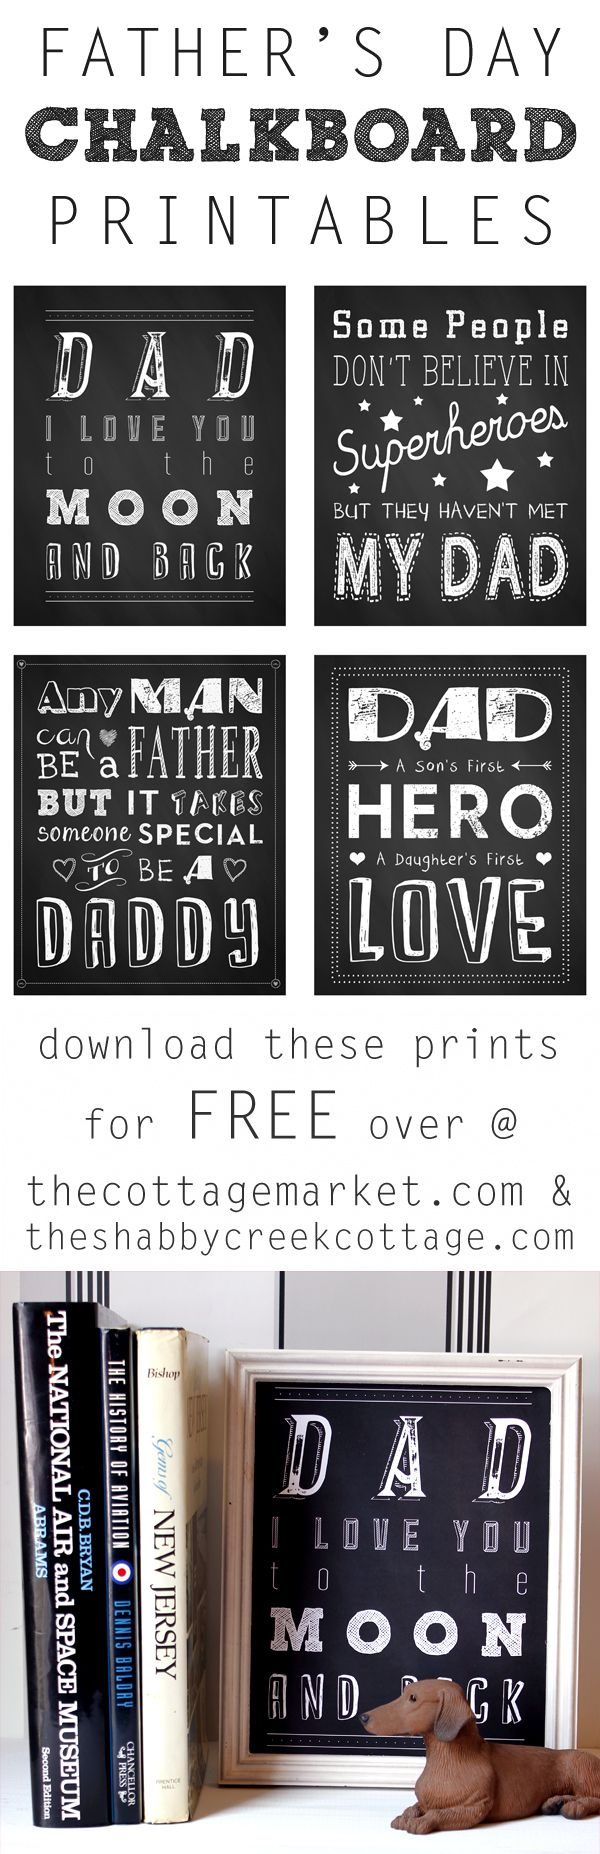 Mmm Speciosa Coupon Codes - This father s day chalkboard printable is cute and can be personalized to your father and father s day craft ideas on frugal coupon living